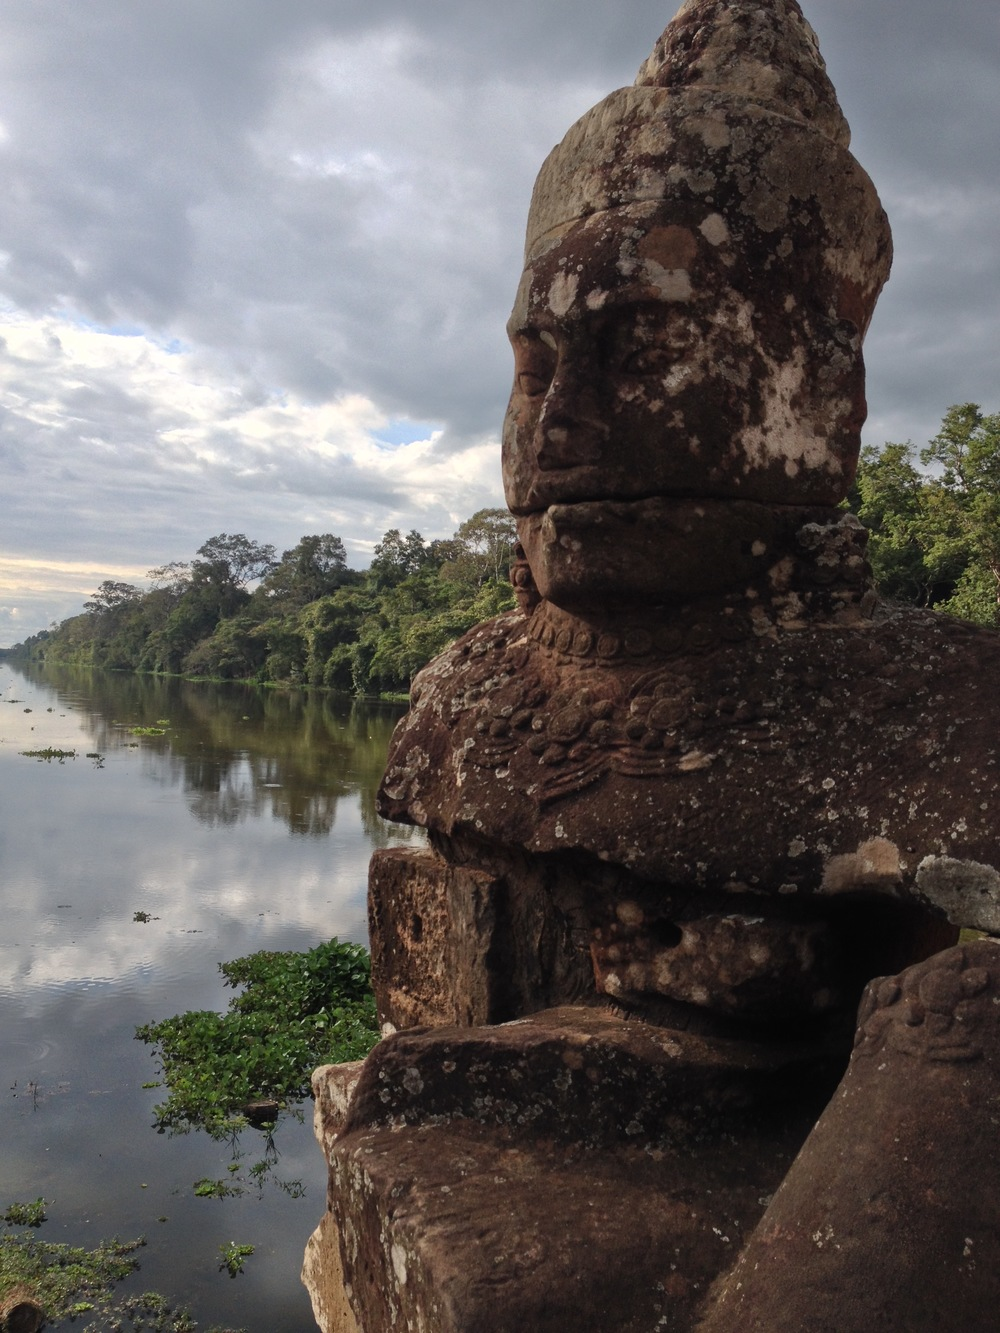 The south gate of Angkor Thom, the capital city of the Khmer rulers, on our way to visit Bayon temple.